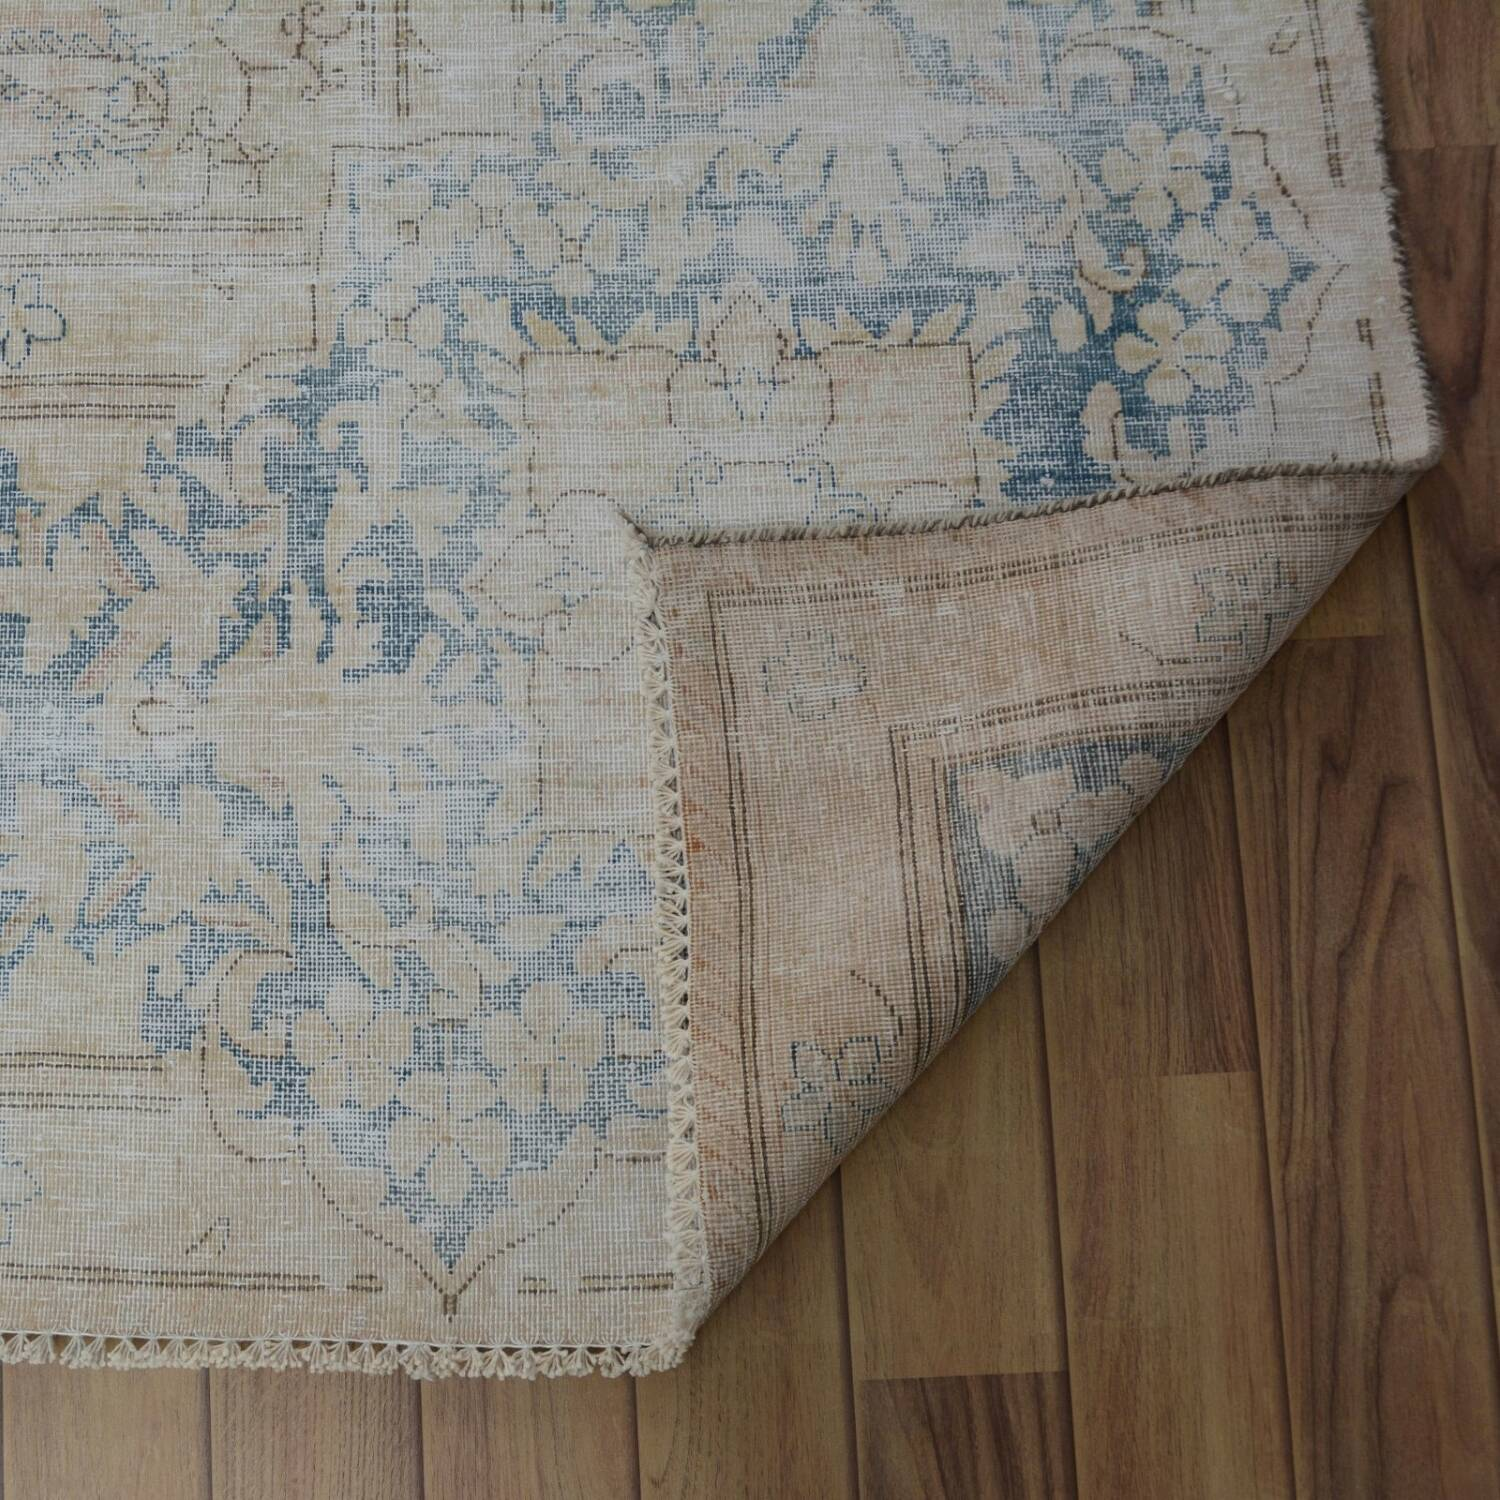 Distressed Antique Kerman Persian Muted Area Rug 10x13 image 7